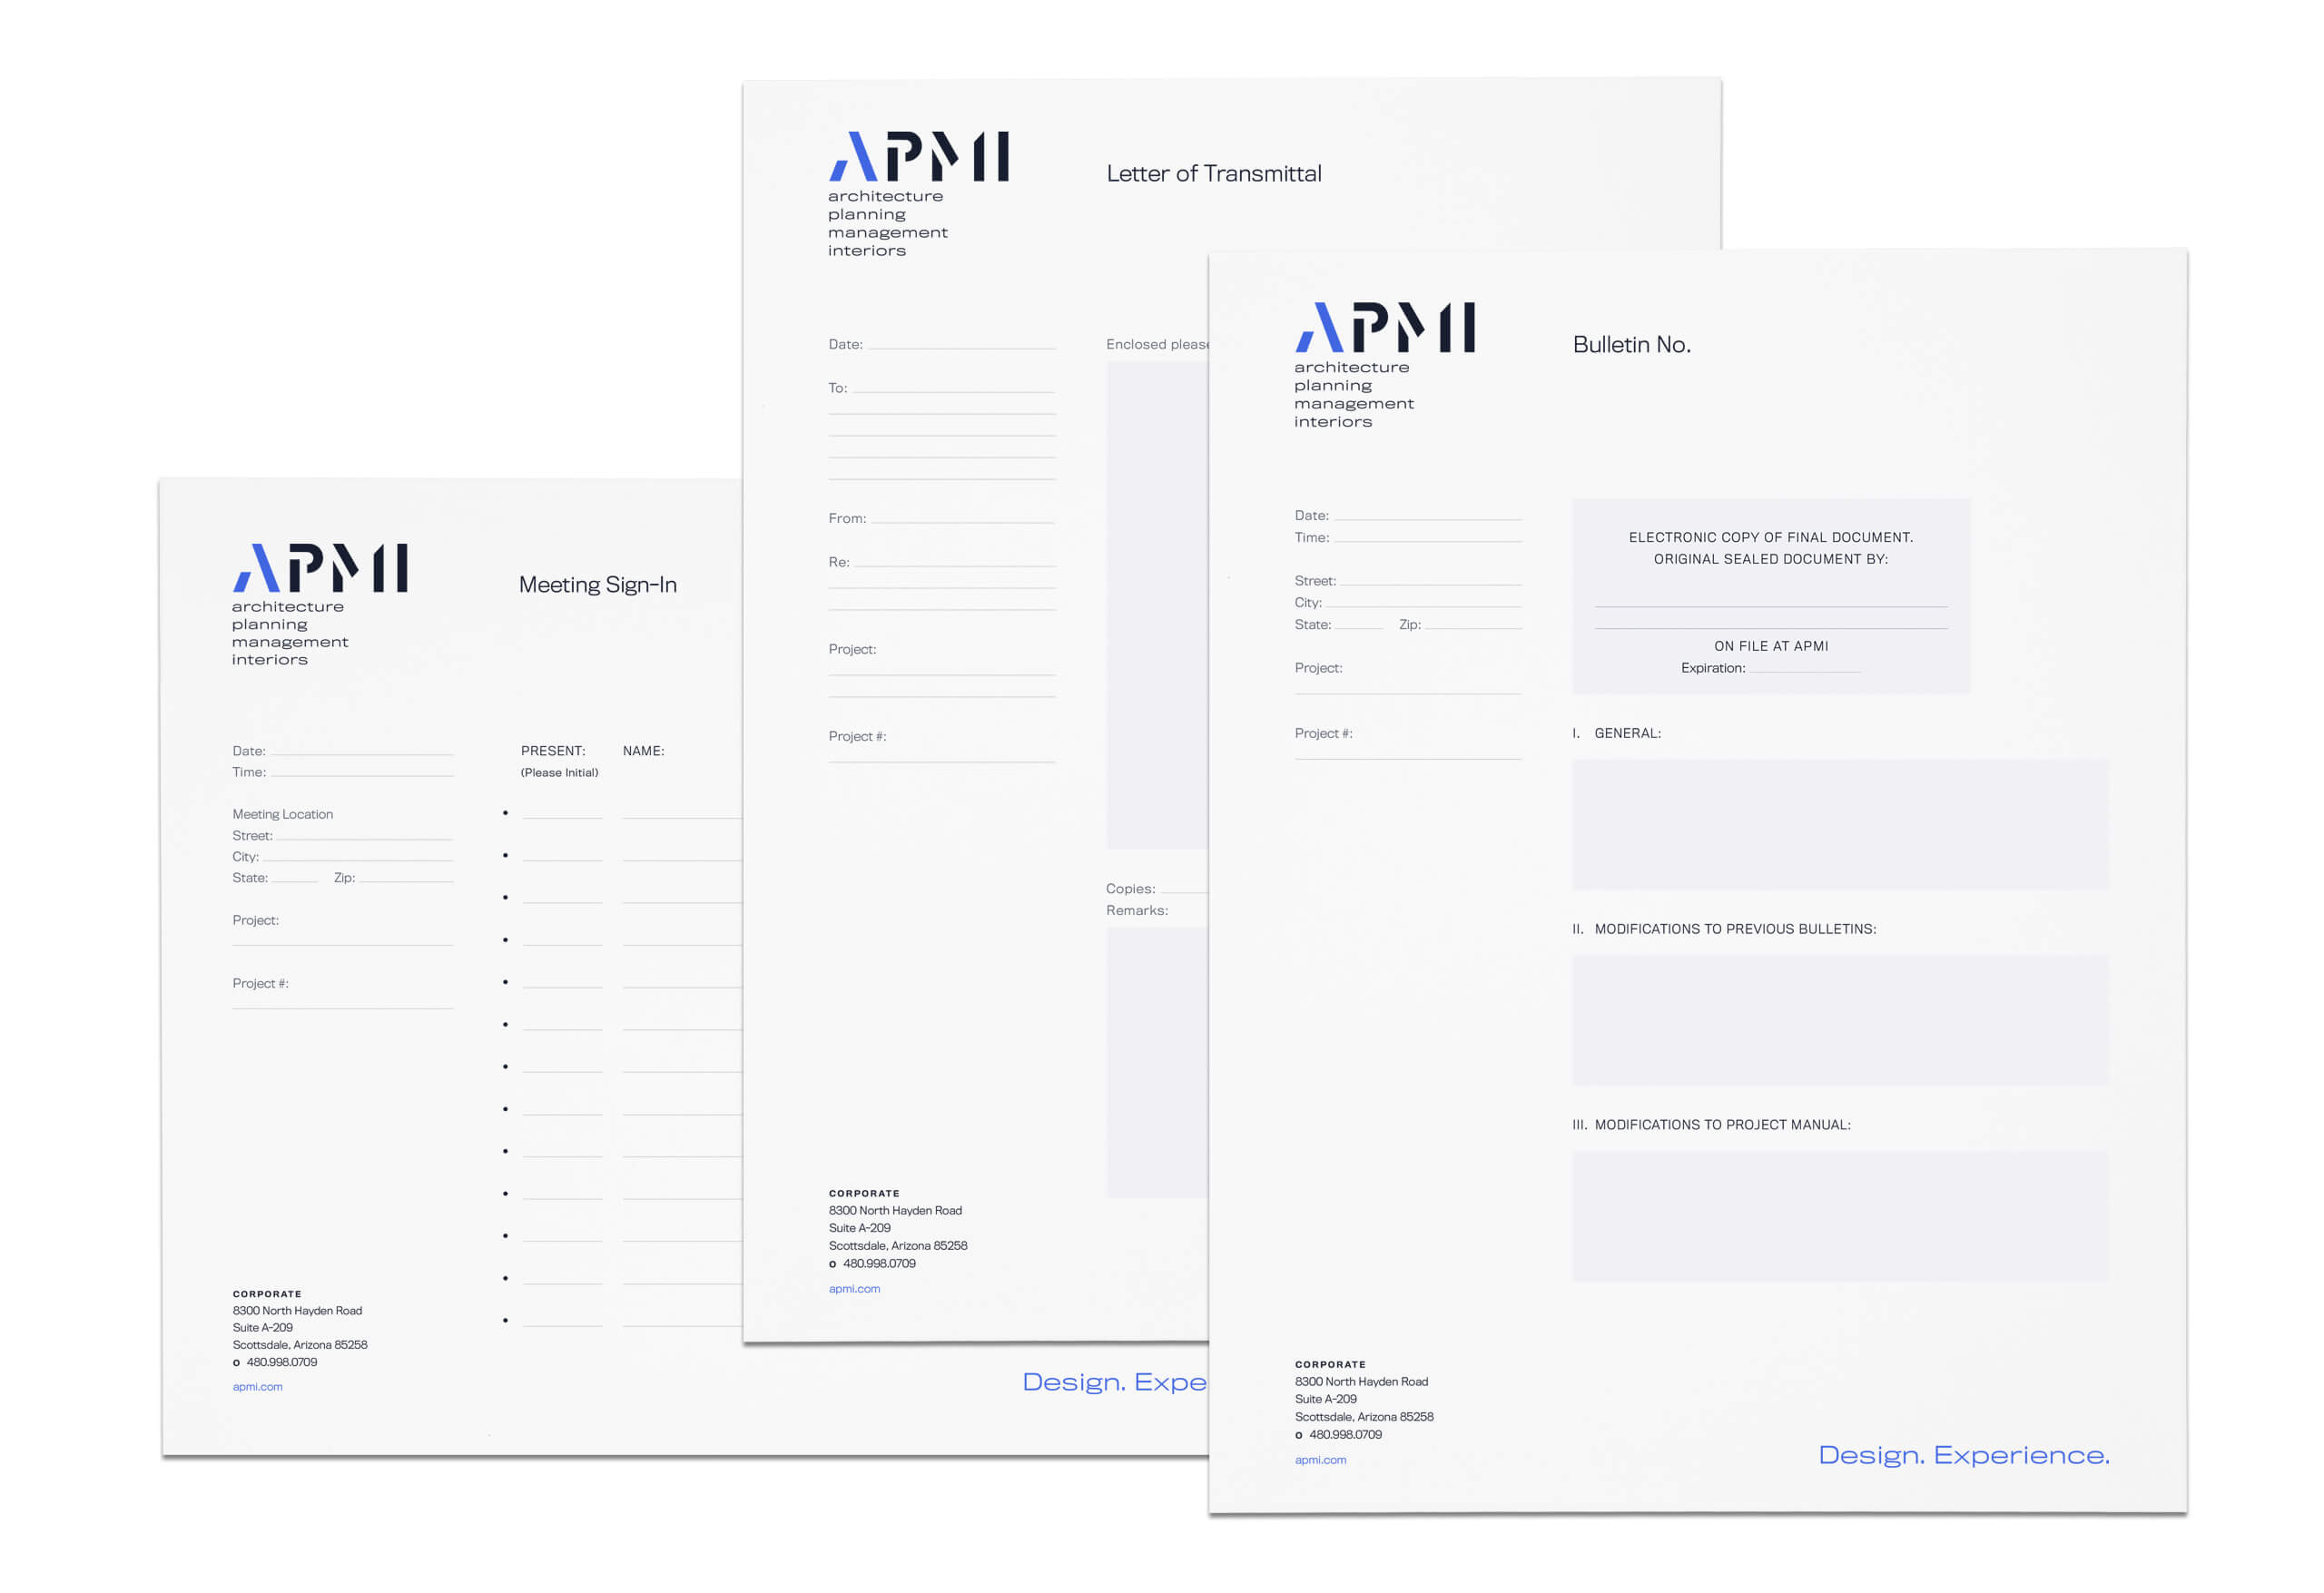 apmi forms